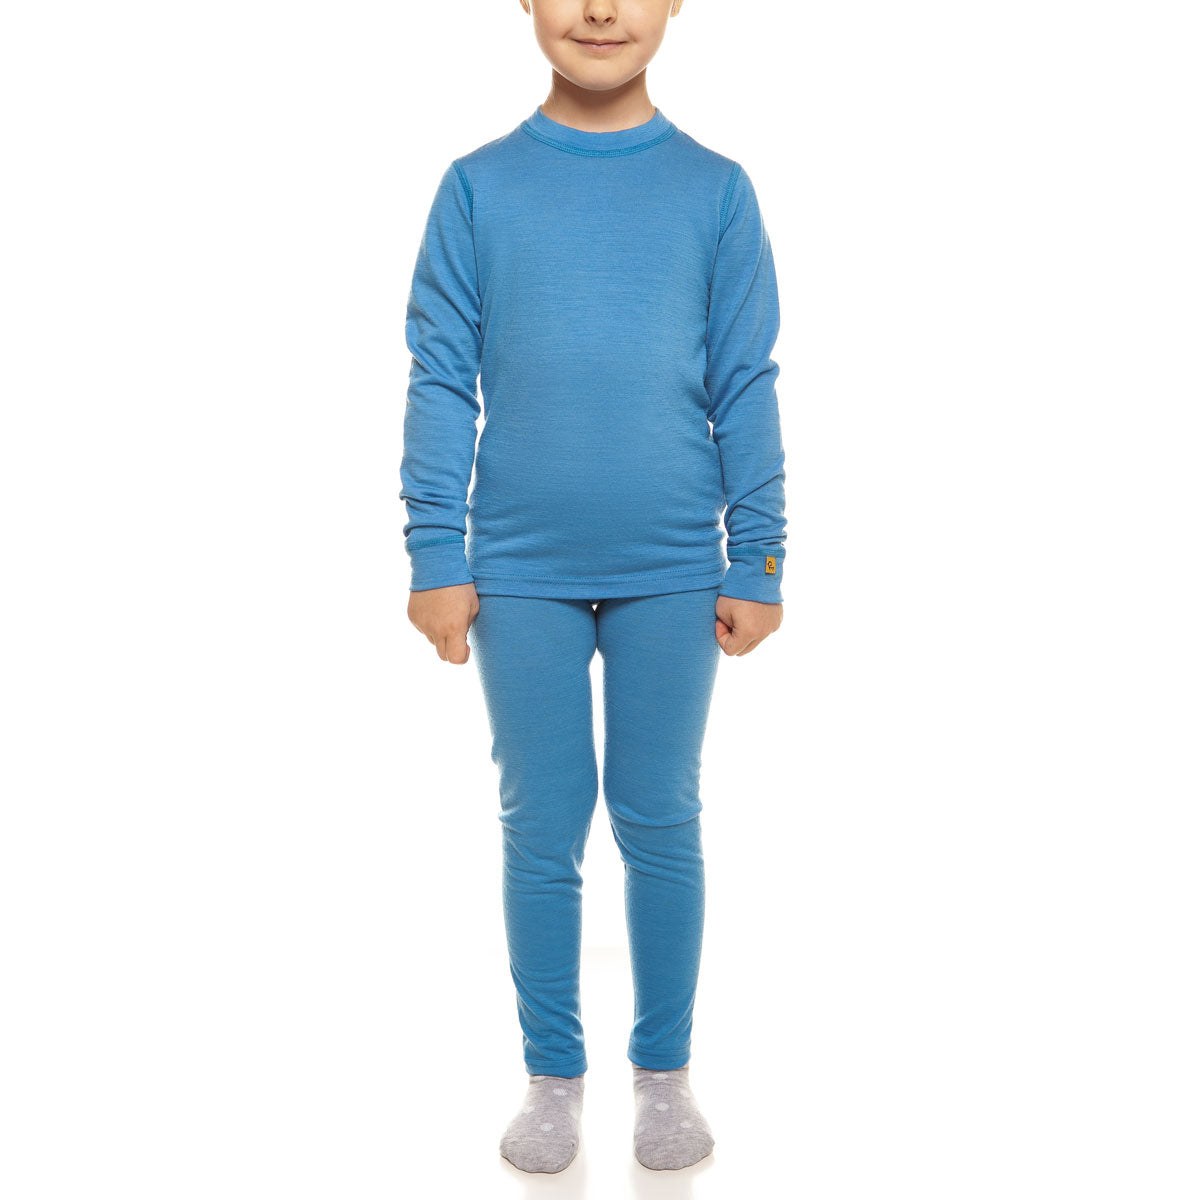 menique Kids' Merino 160 Long Sleeve Set Light Blue Color